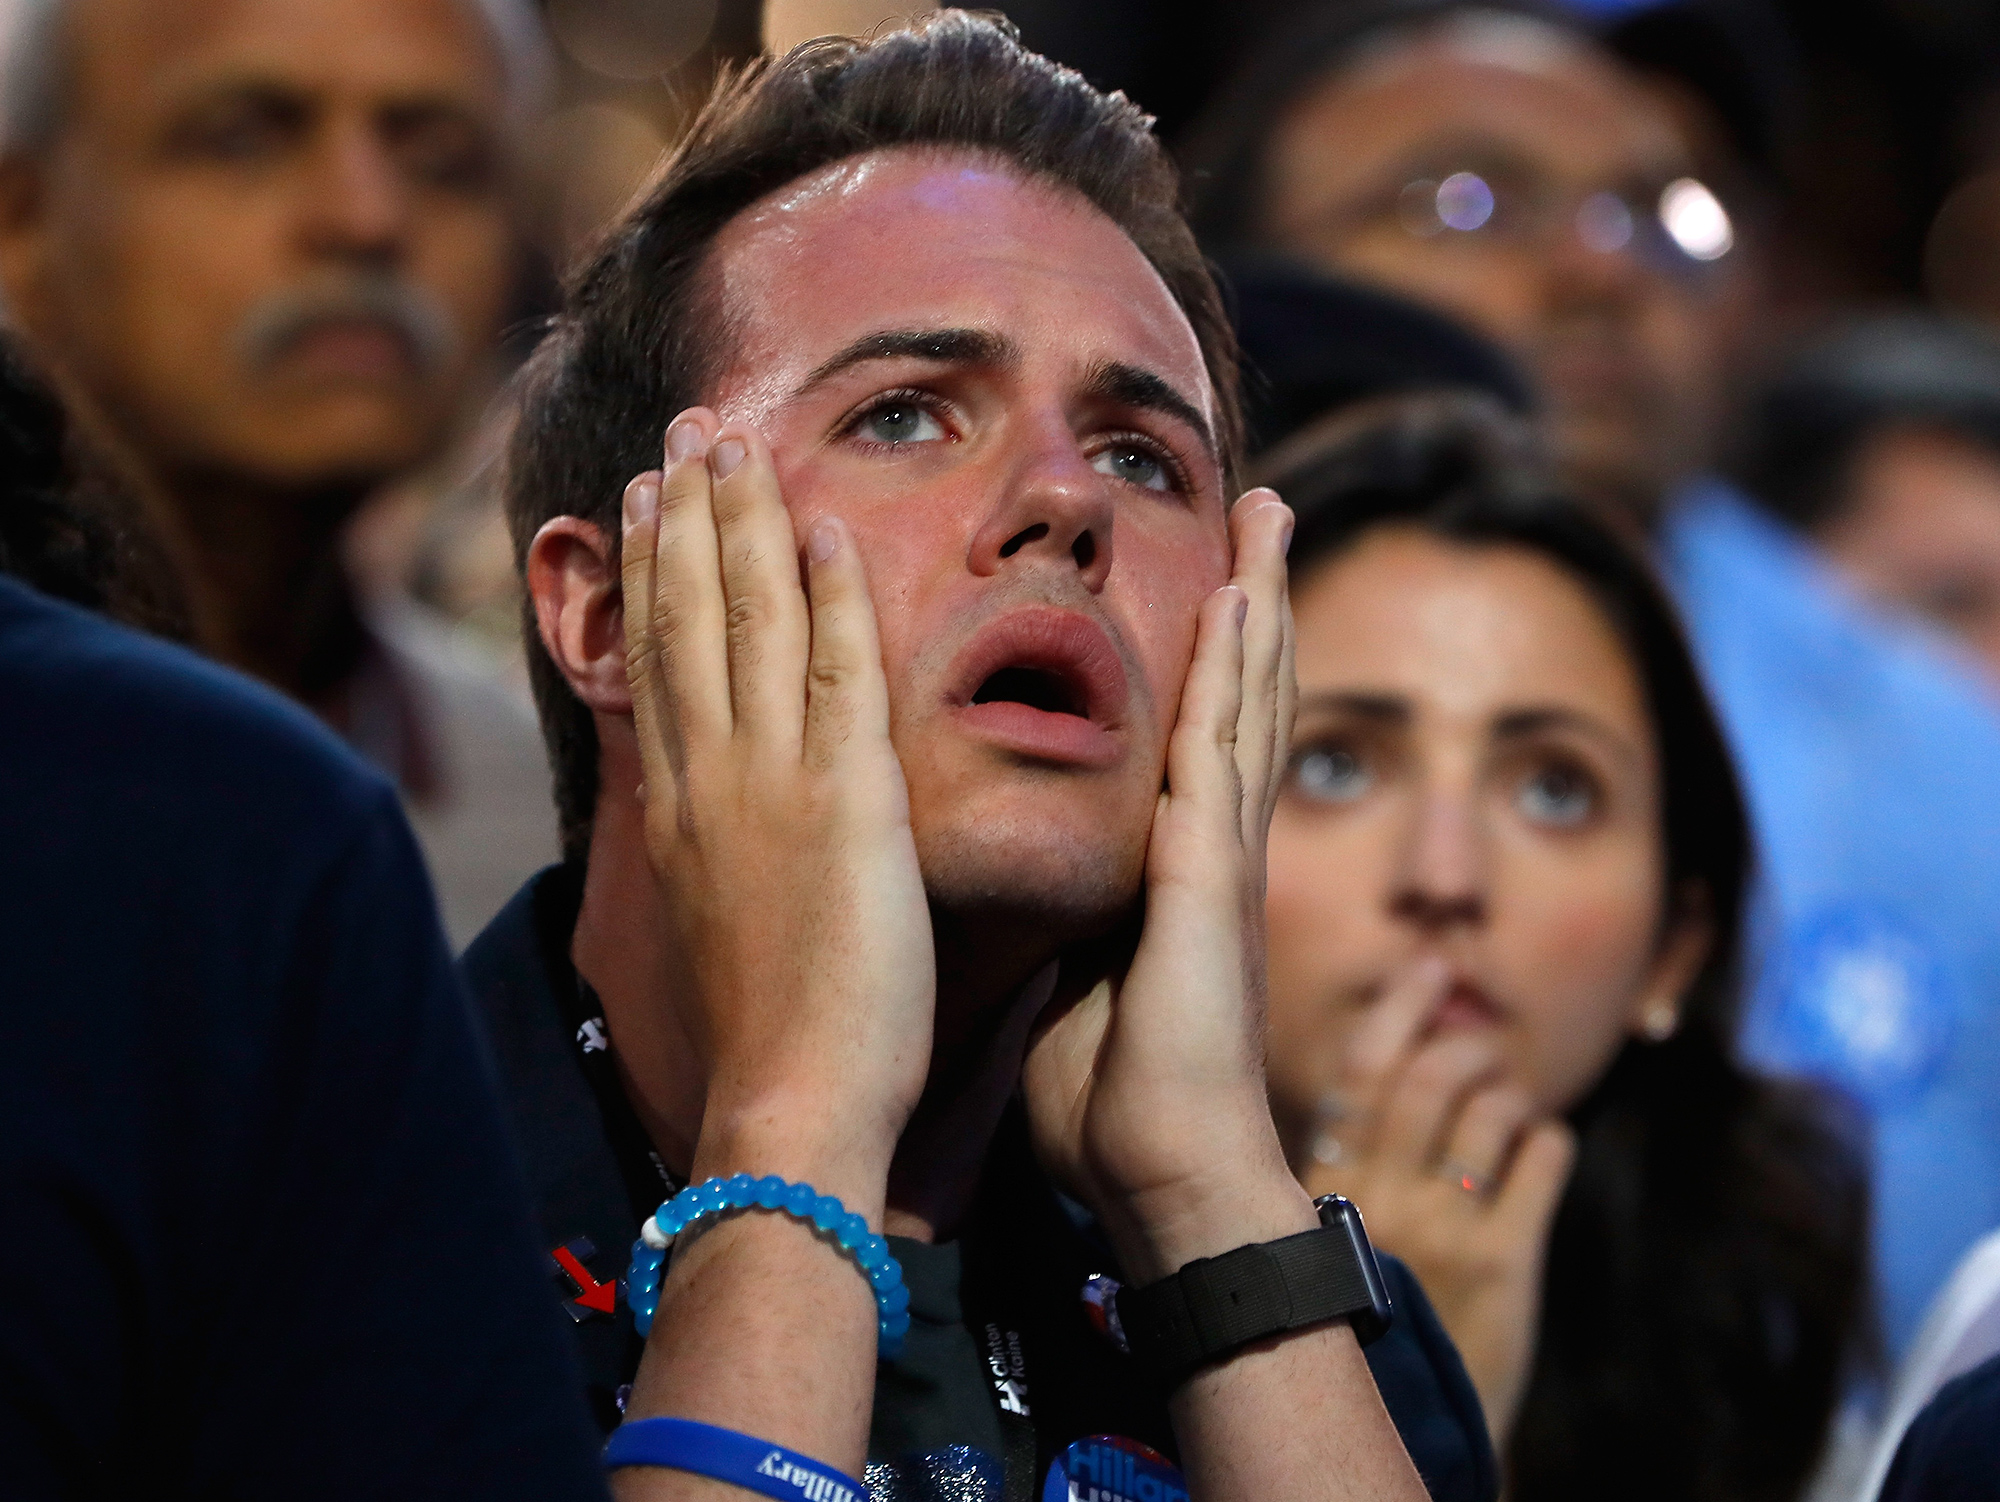 NEW YORK, NY - NOVEMBER 08: A man reacts as he watches voting results at Democratic presidential nominee former Secretary of State Hillary Clinton's election night event at the Jacob K. Javits Convention Center November 8, 2016 in New York City. Clinton is running against Republican nominee, Donald J. Trump to be the 45th President of the United States. (Photo by Aaron P. Bernstein/Getty Images) Getty Images North America 681261599 621802304